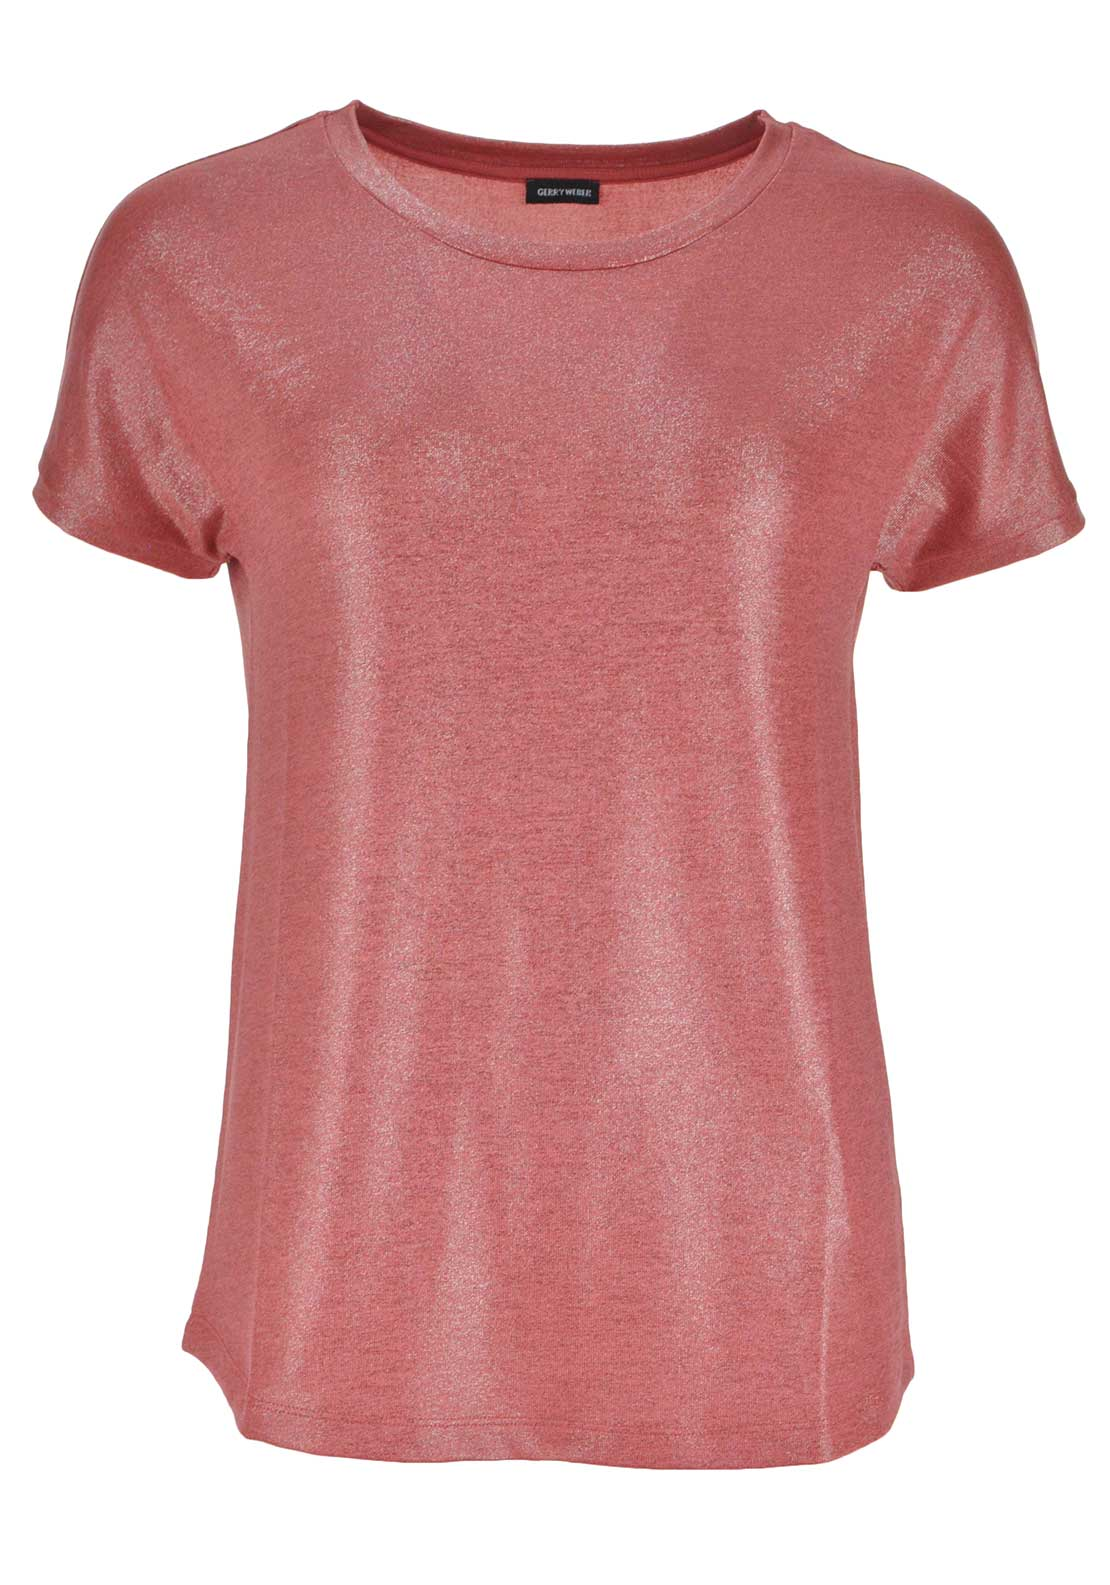 Gerry Weber Shimmer Short Sleeve Top, Coral Pink